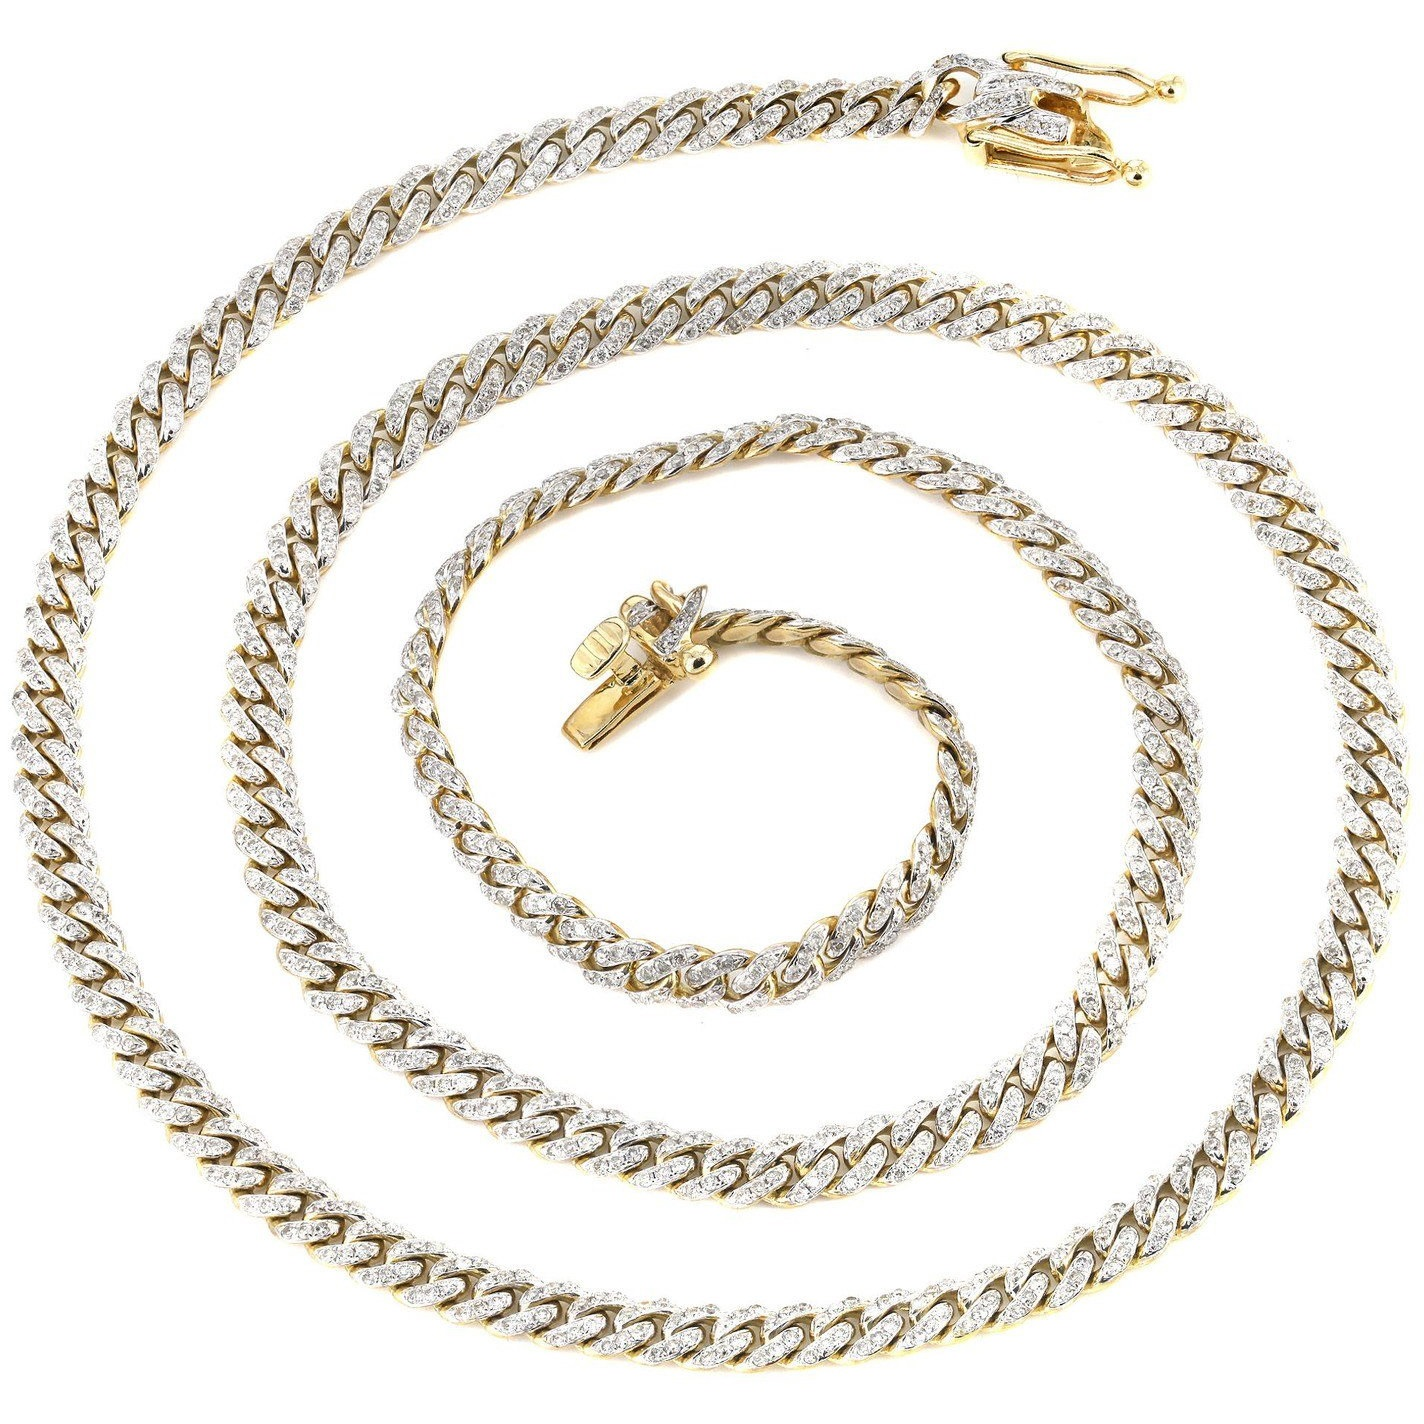 versace website en for store accessories men international chains online regular necklaces dmtd diamondcutswirlpendantnecklace official fashion jewelry